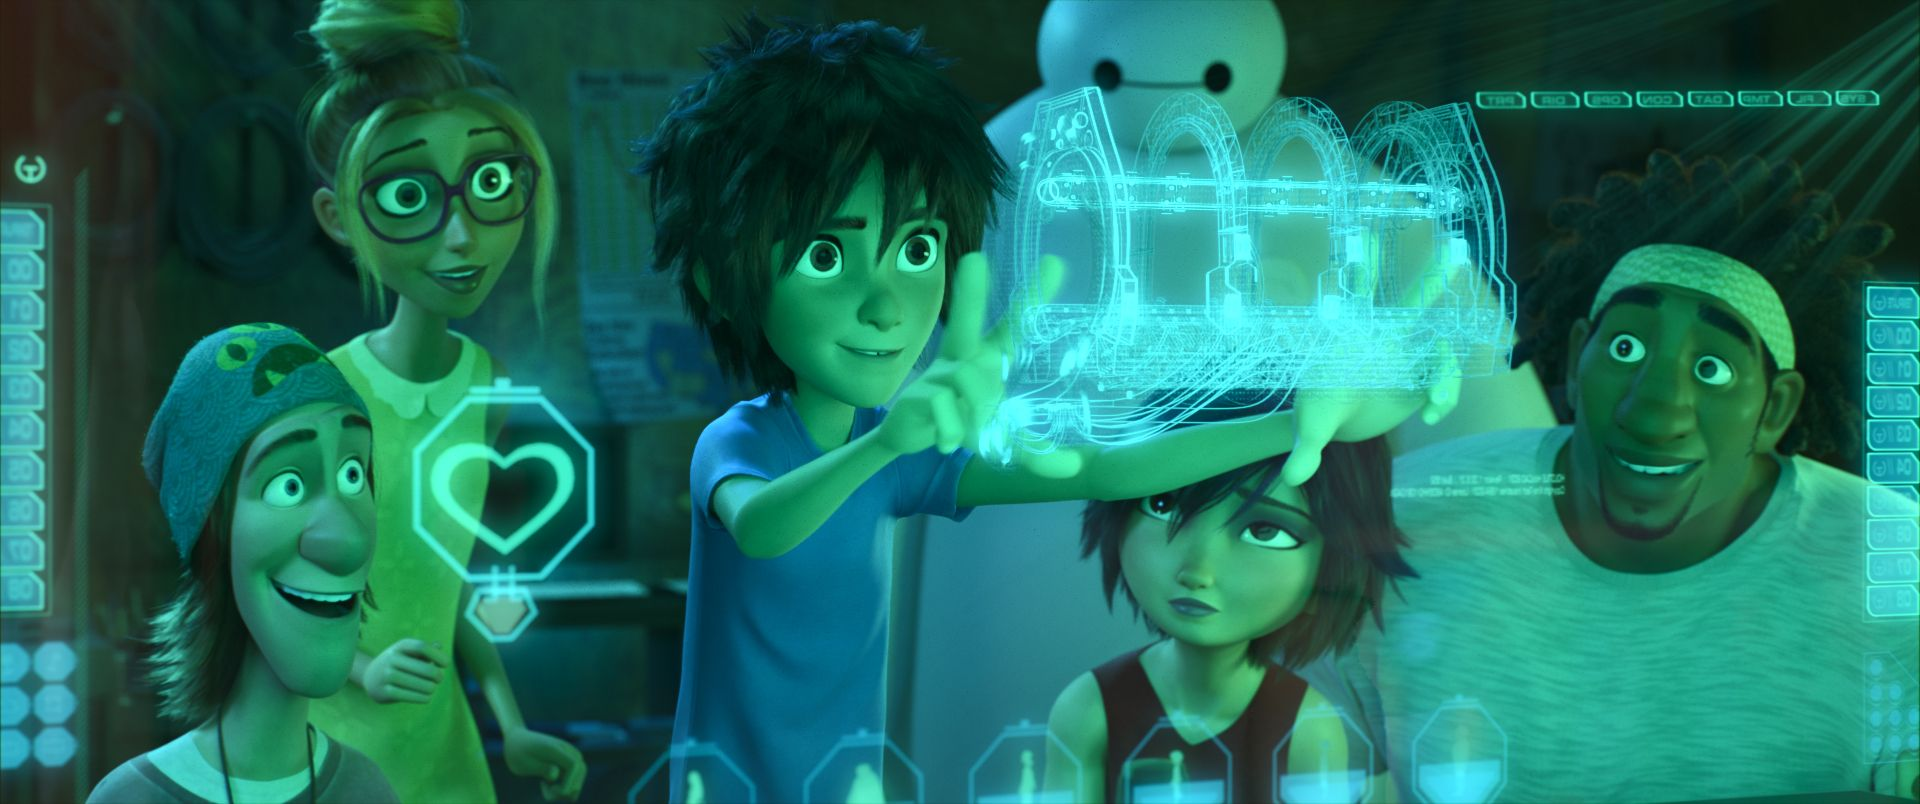 Big Hero 6 Sequel Talk Confirmed, Get The Latest